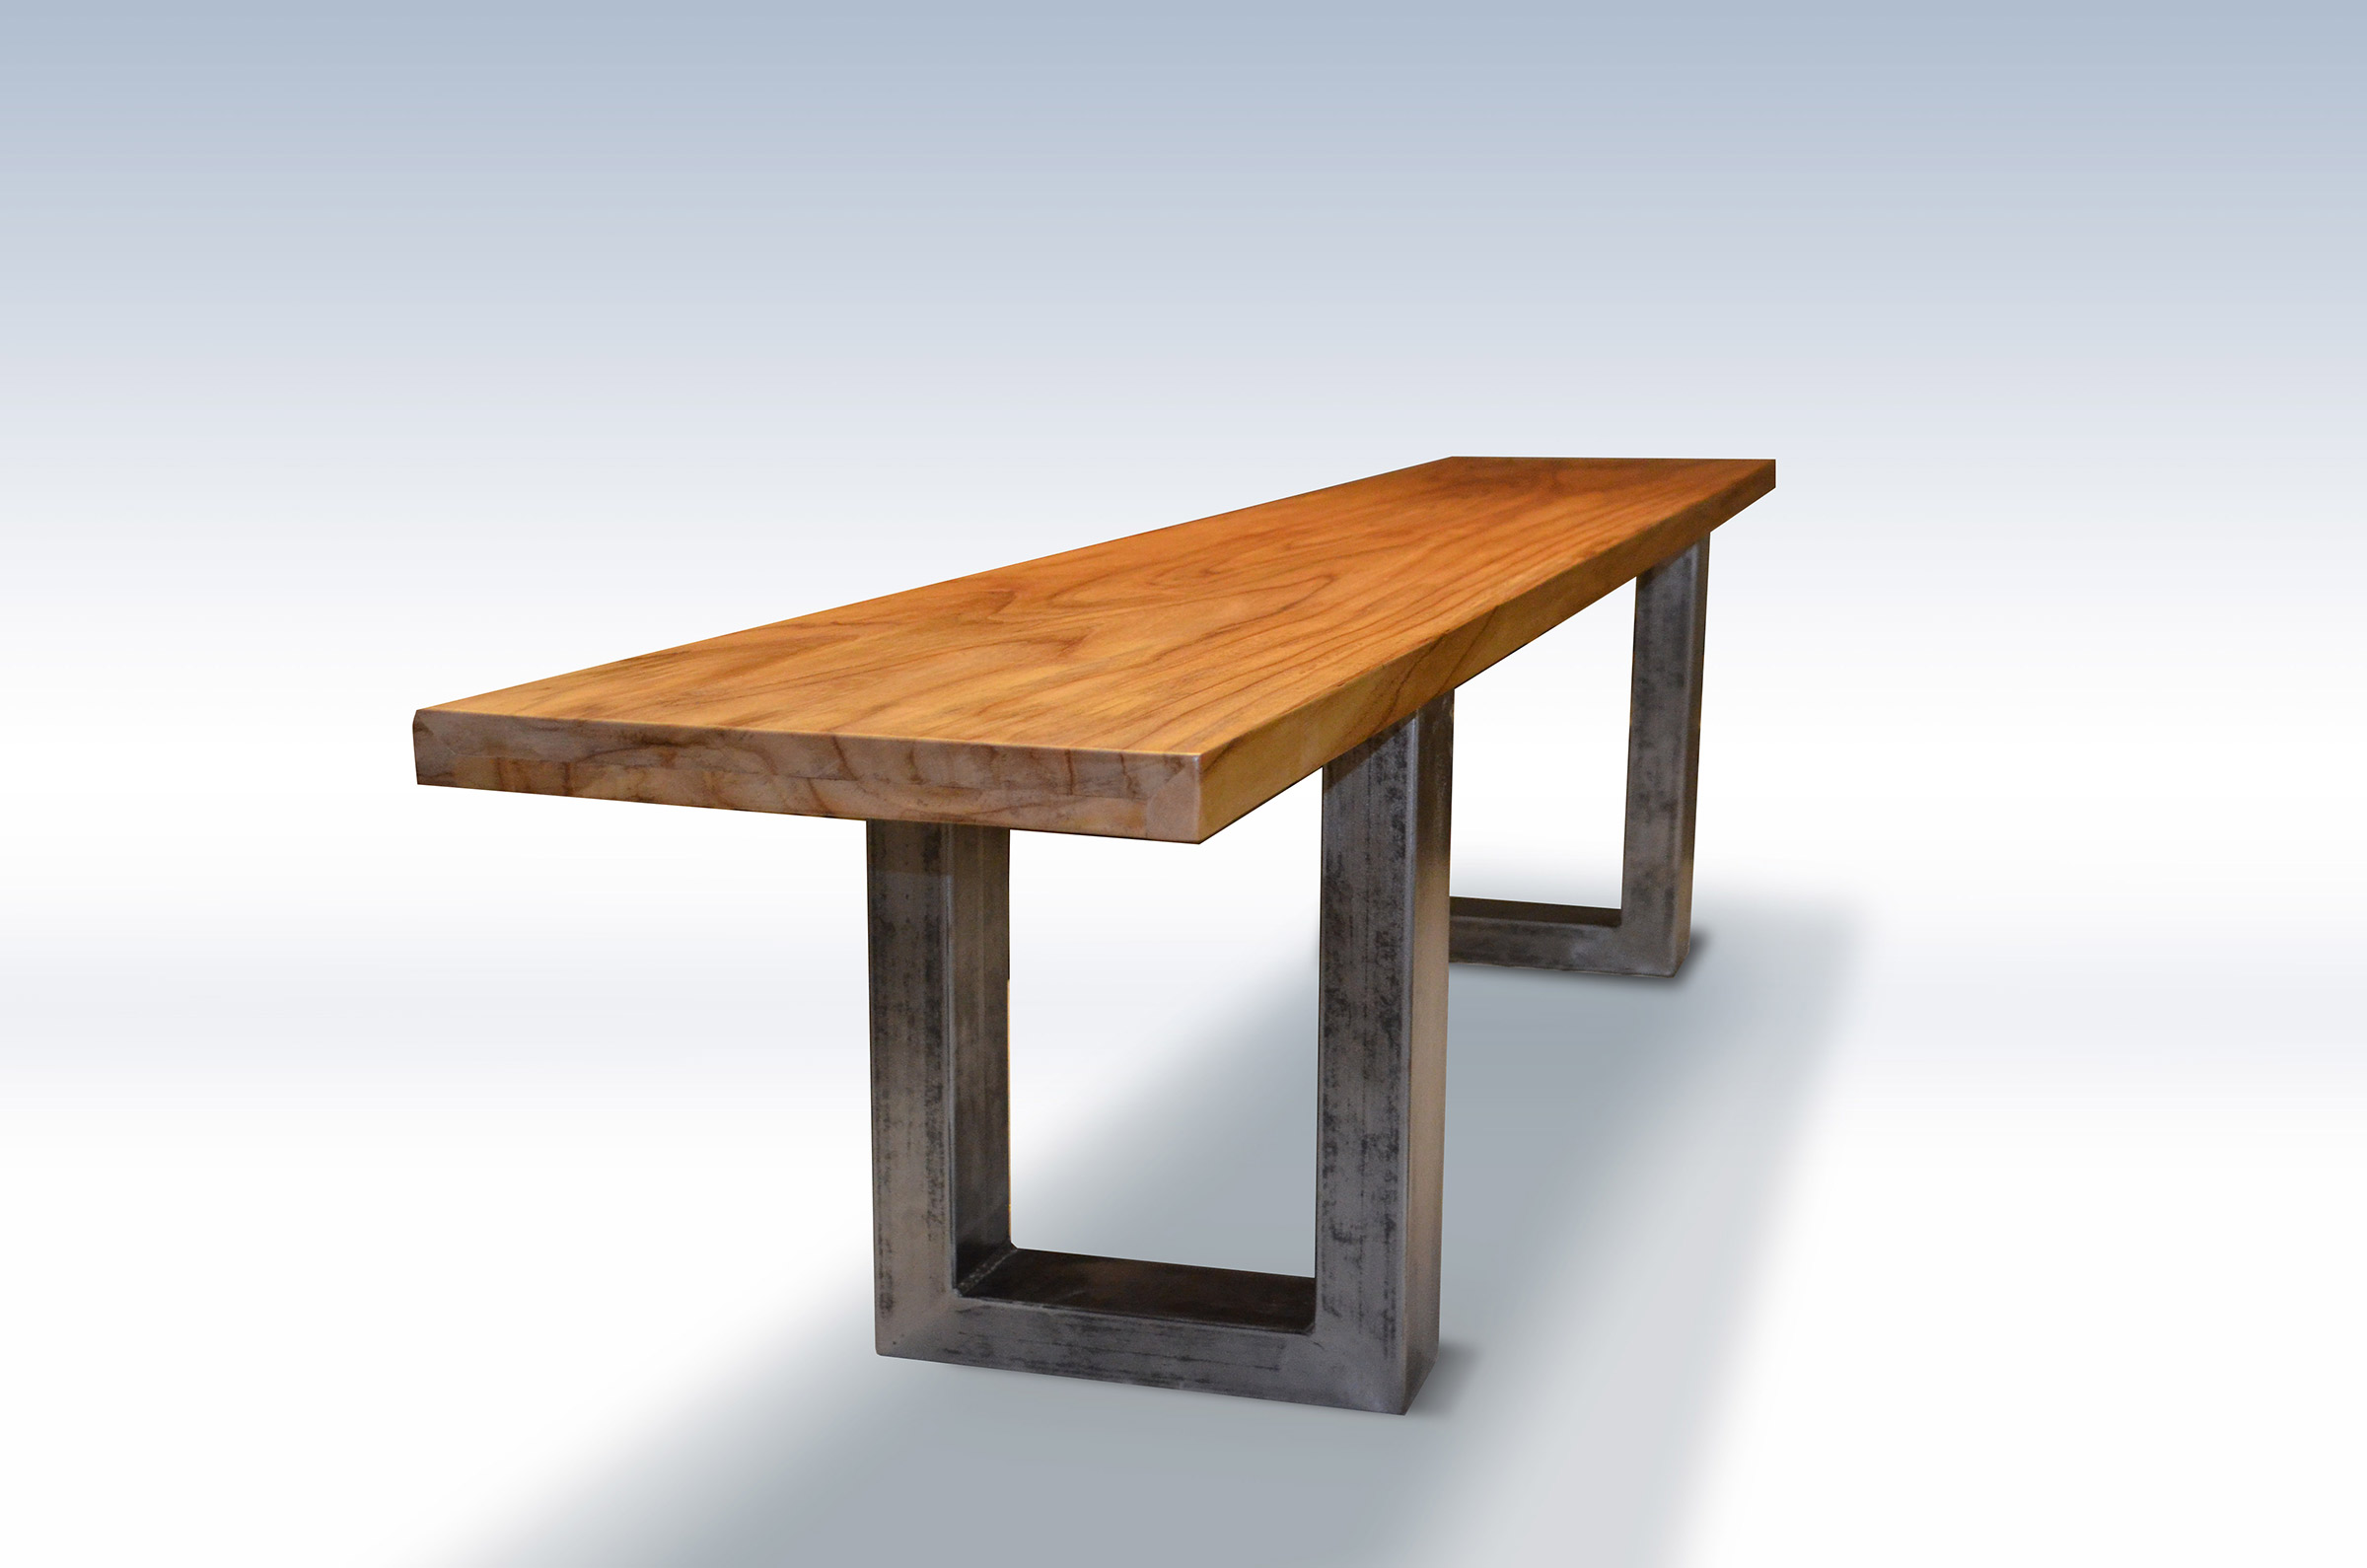 Modern Teak Wood Bench With Metal Legs Abodeacious